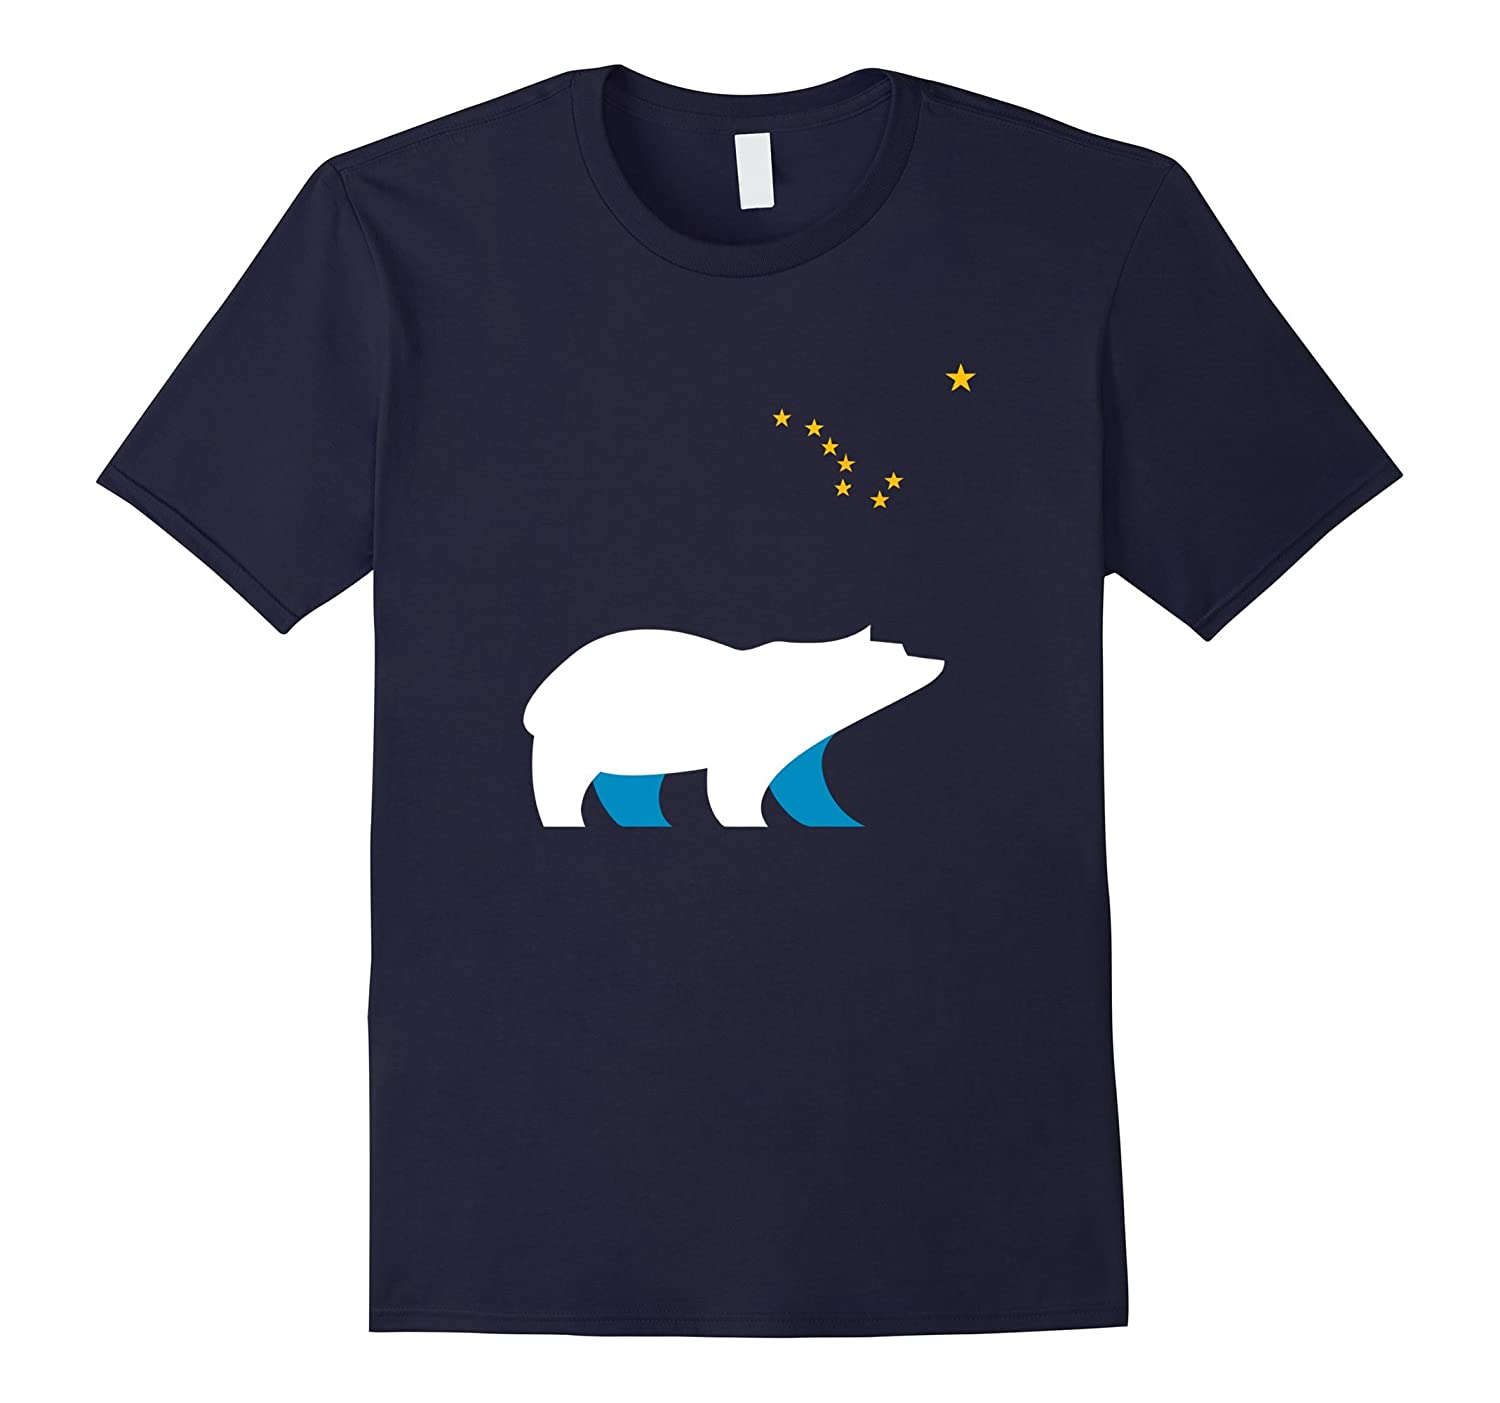 Alaska Shirt - Alaskan State Tshirt - Alaskan Bear - INCREDIBLE PREMIUM QUALITY SHIRTS - SHIPPED BY AMAZON-BN